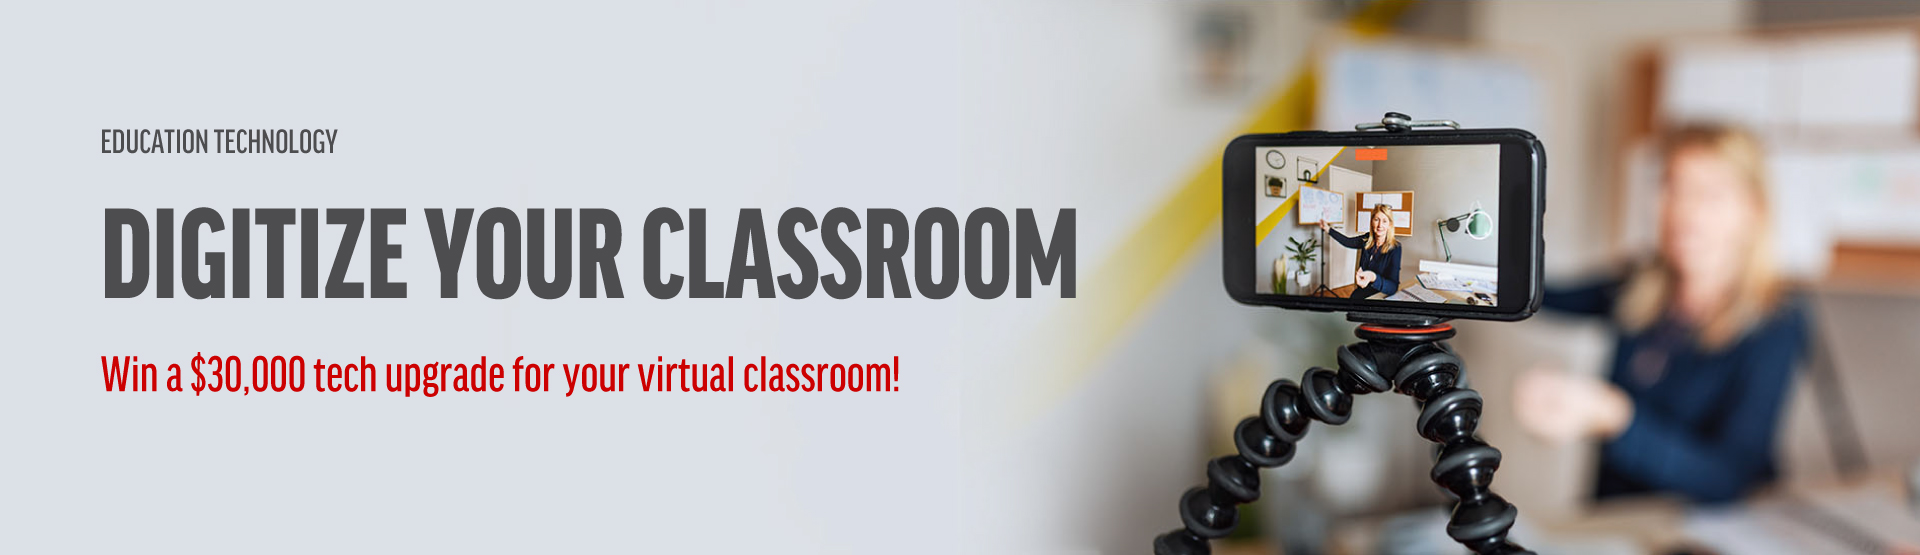 digitize-your-classroom-2020-contest-form-img